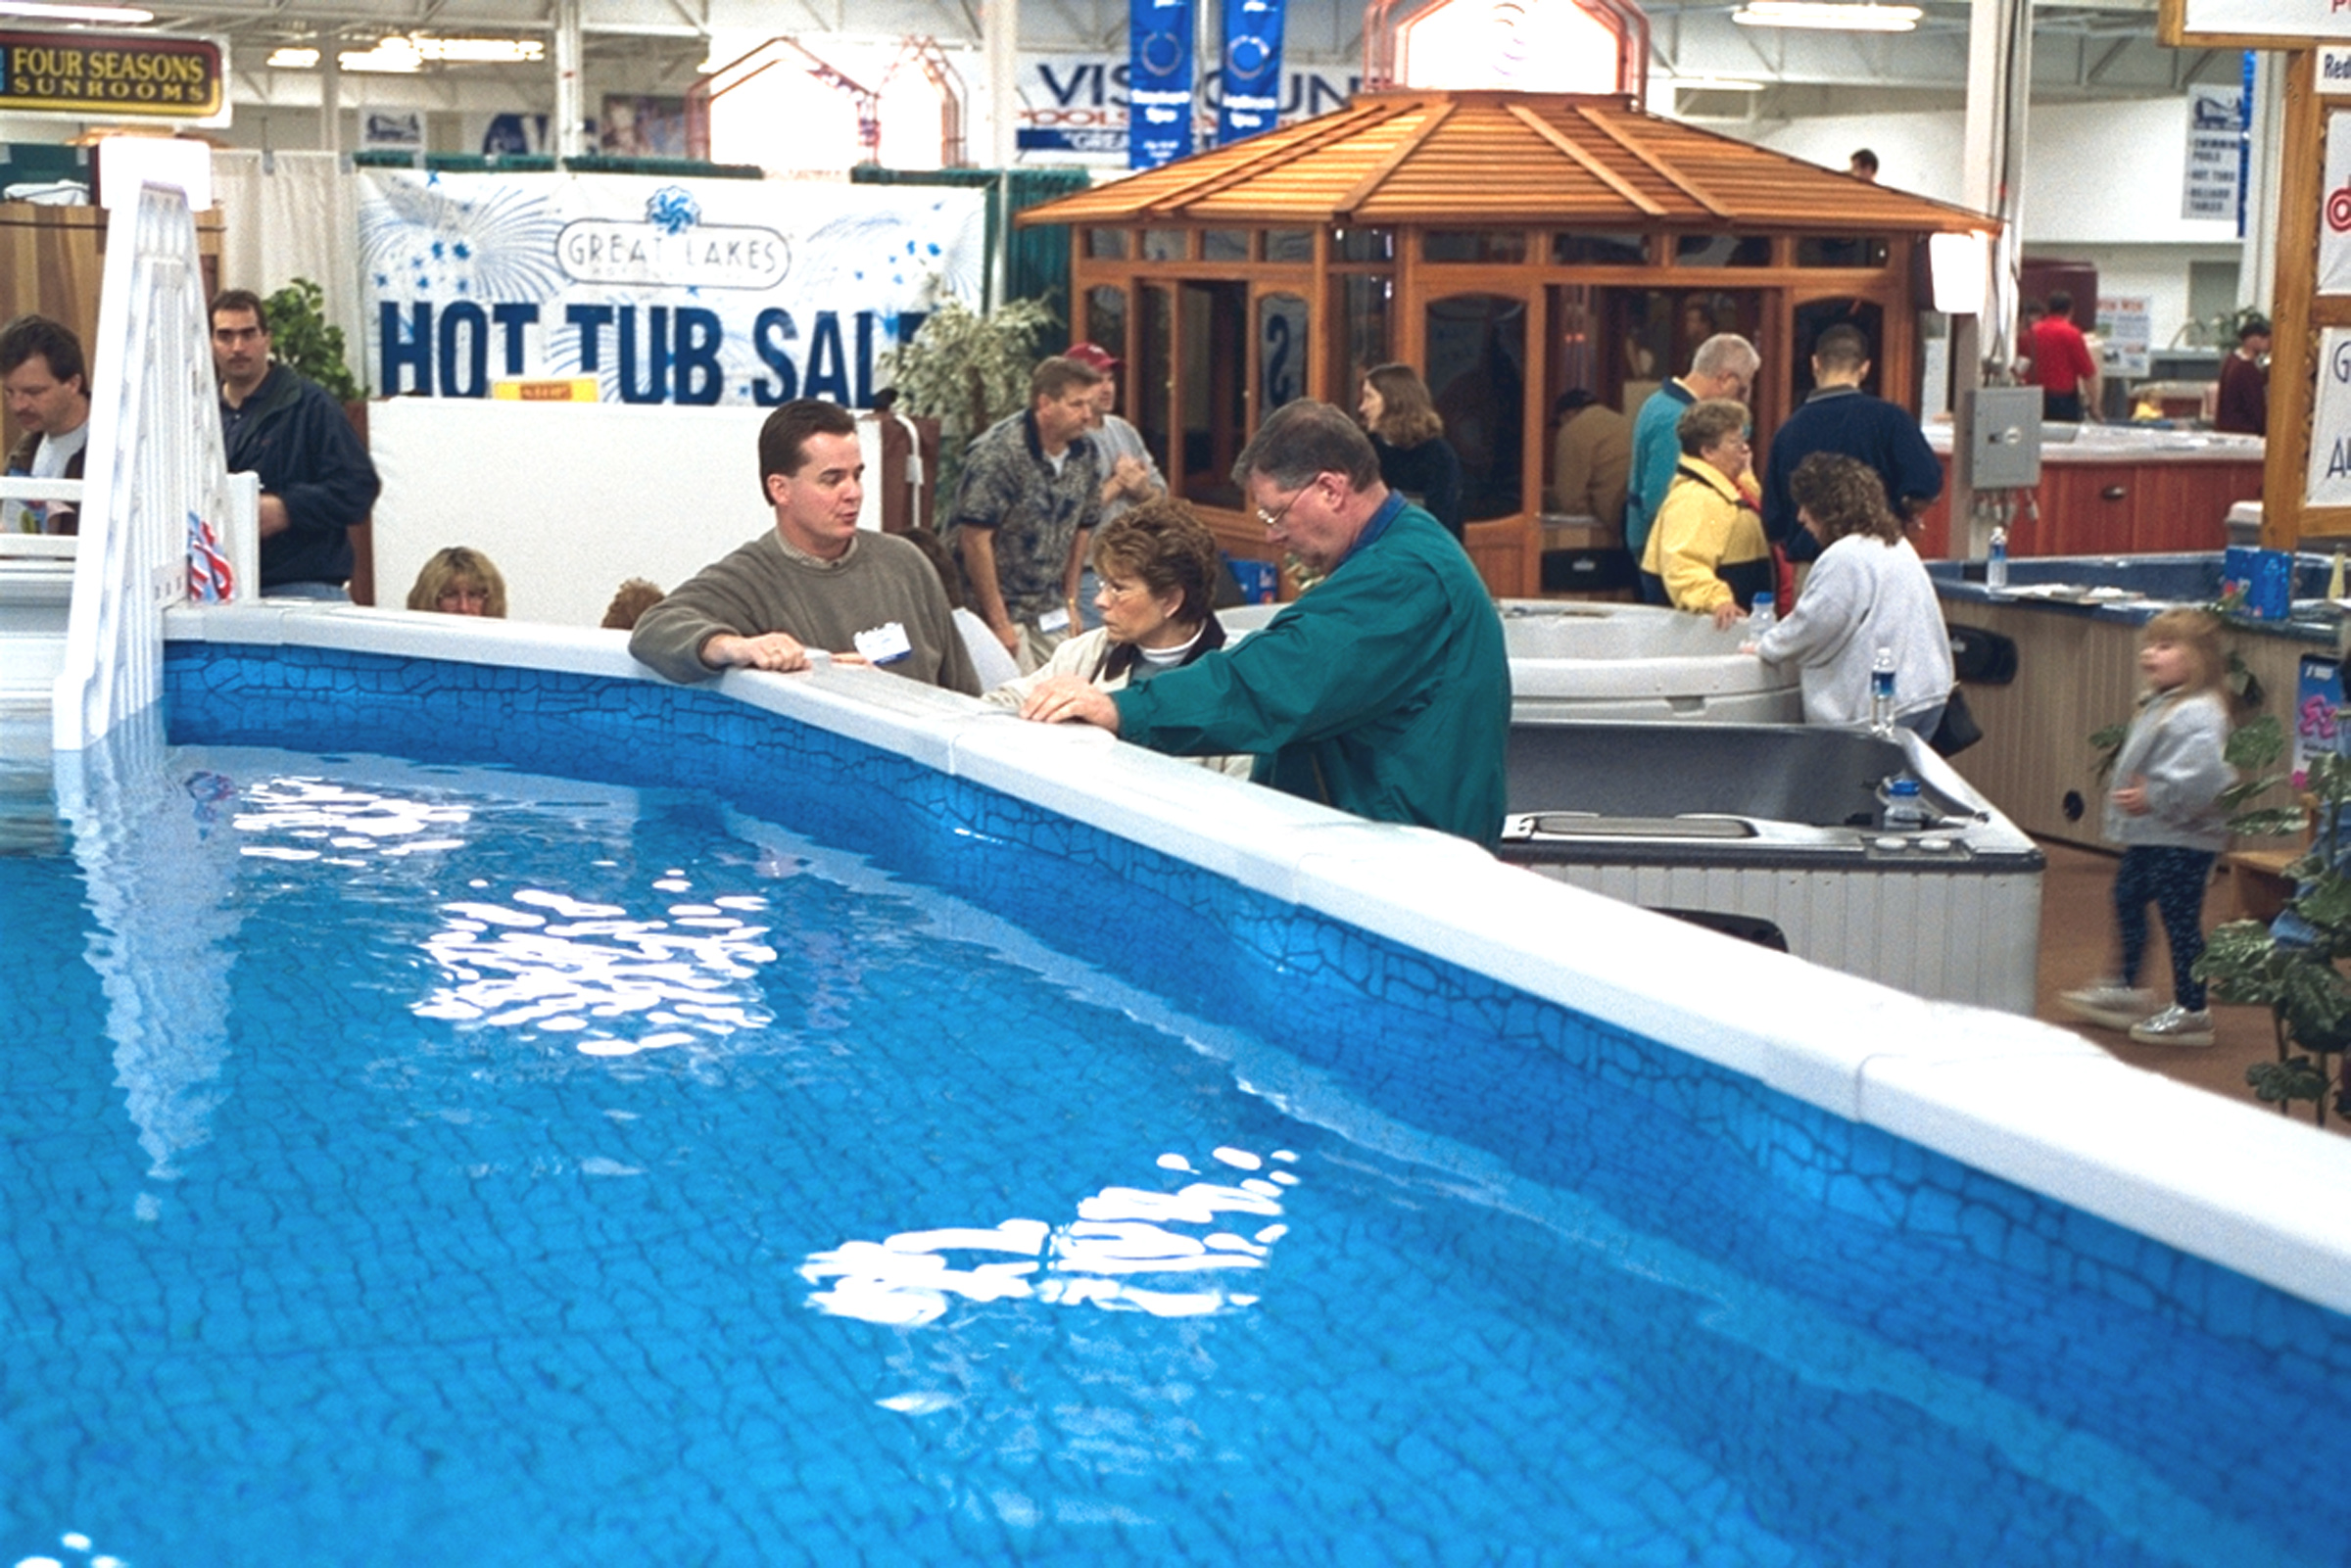 Novi backyard pool spa show opens friday march 22 in novi for Pool and spa show usa